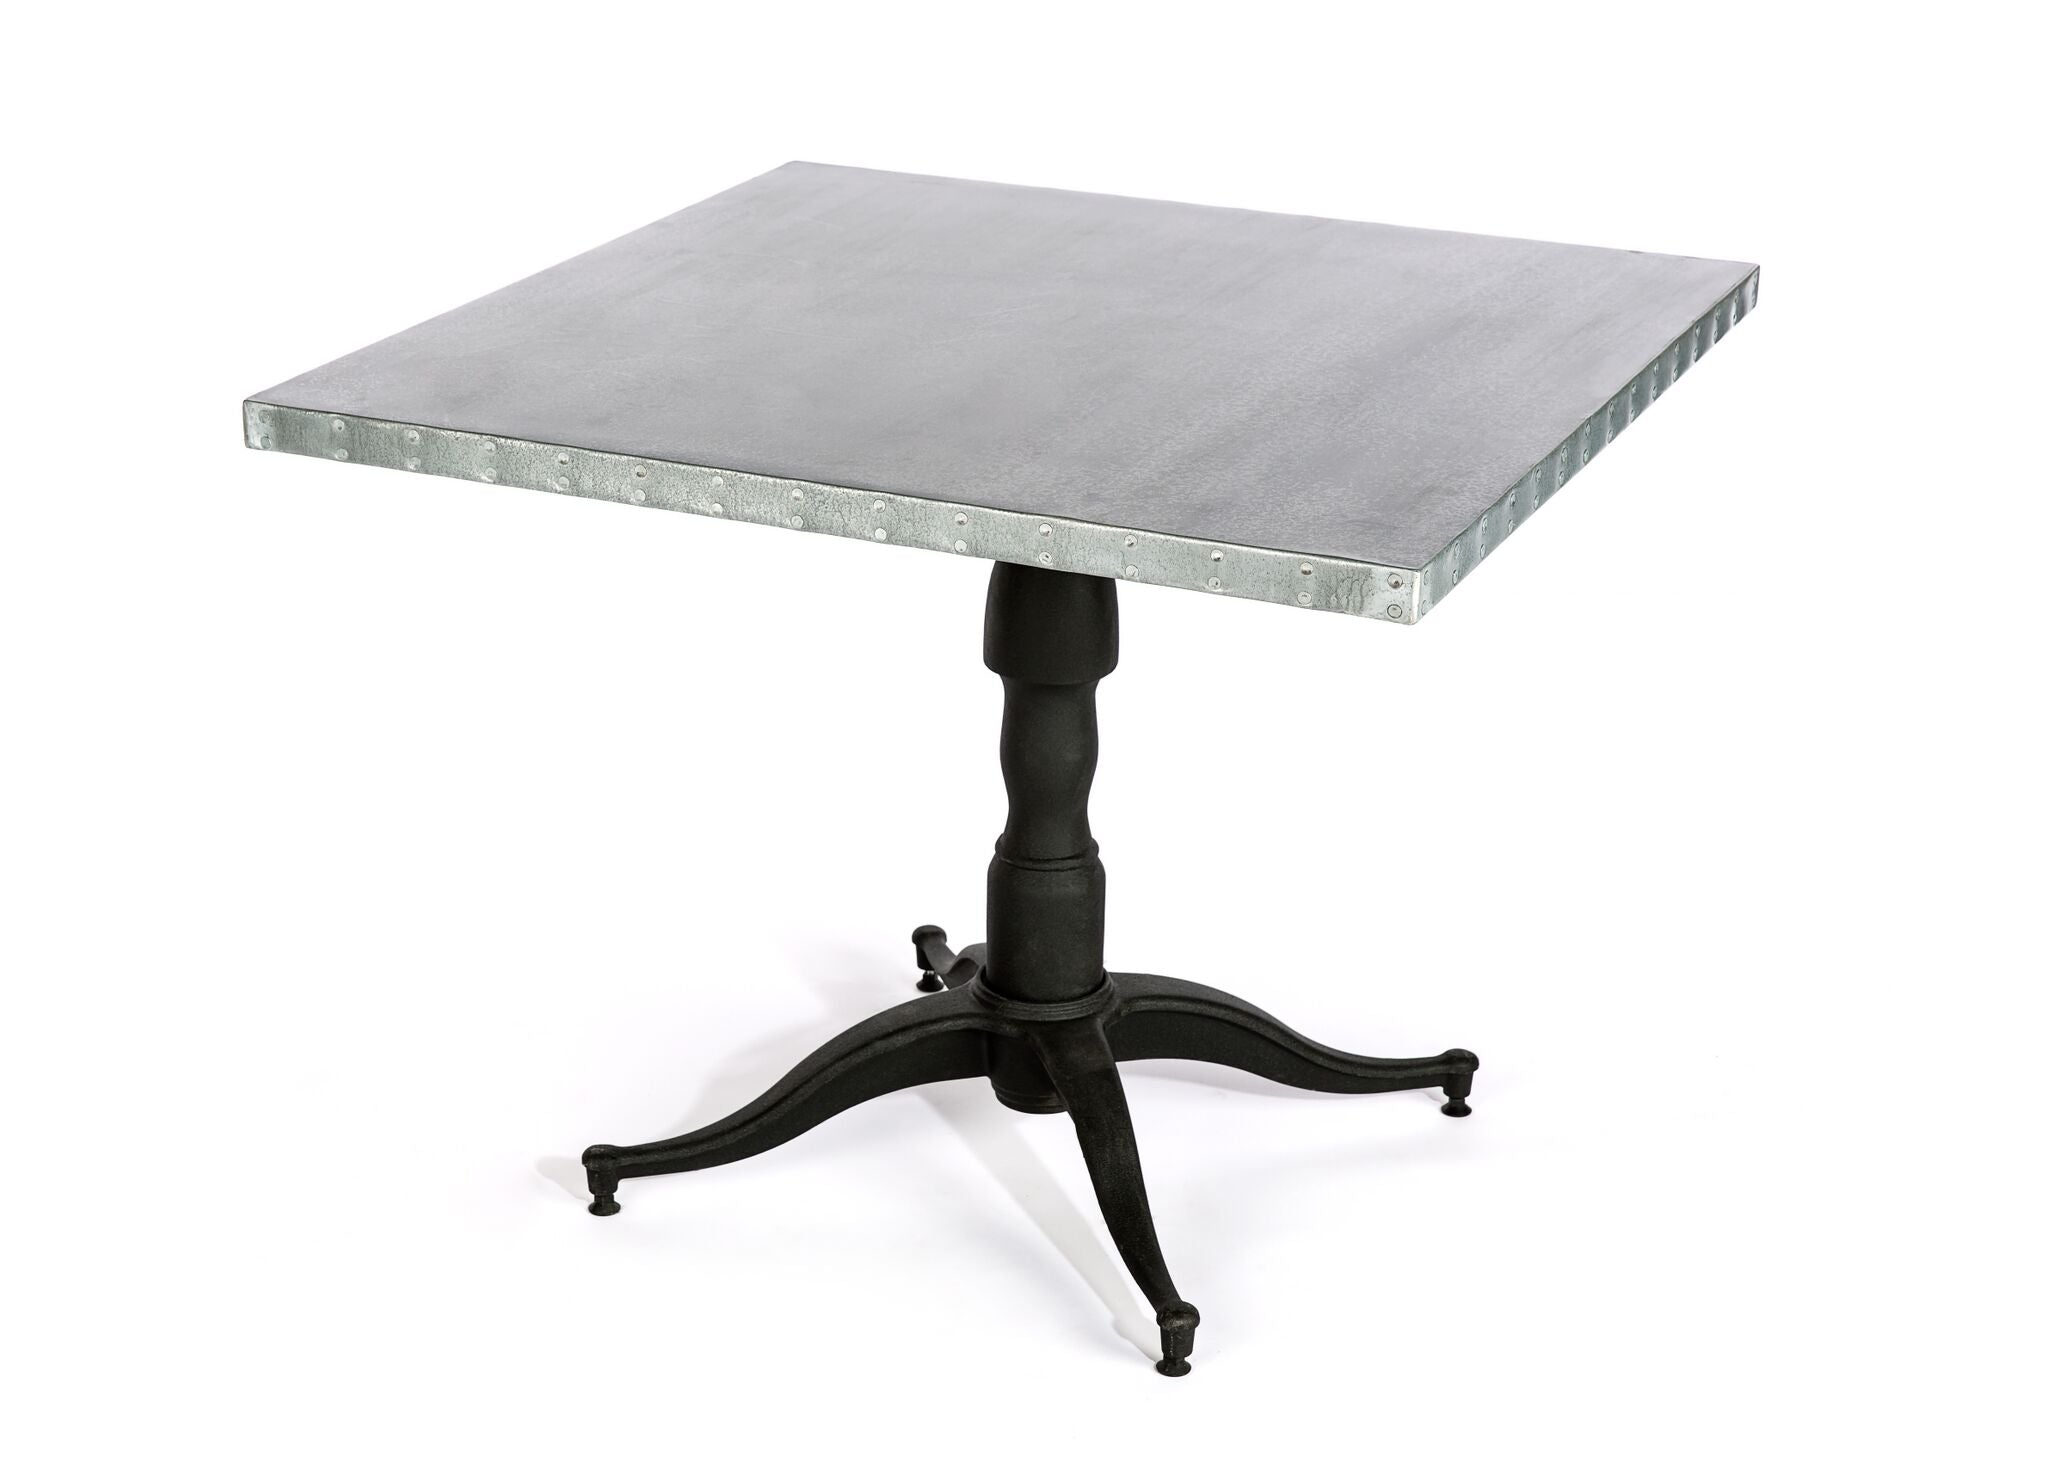 Zinc Square Tables | Francesca Table | CLASSIC | Natural Black Walnut | CUSTOM SIZE D 42 | kingston-krafts-zinc-tables.